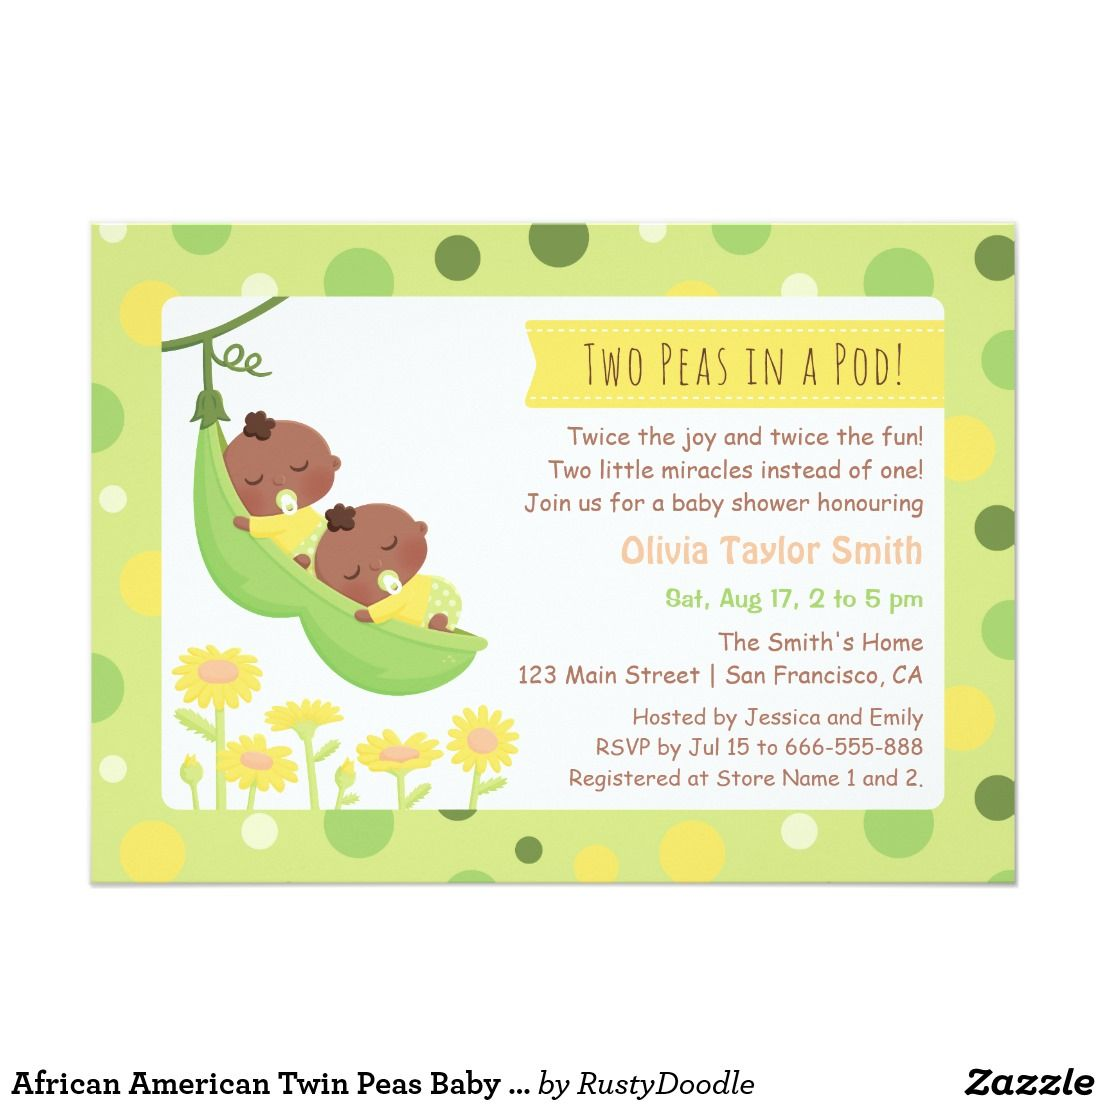 African American Twin Peas Baby Shower Invitations | Baby invitations